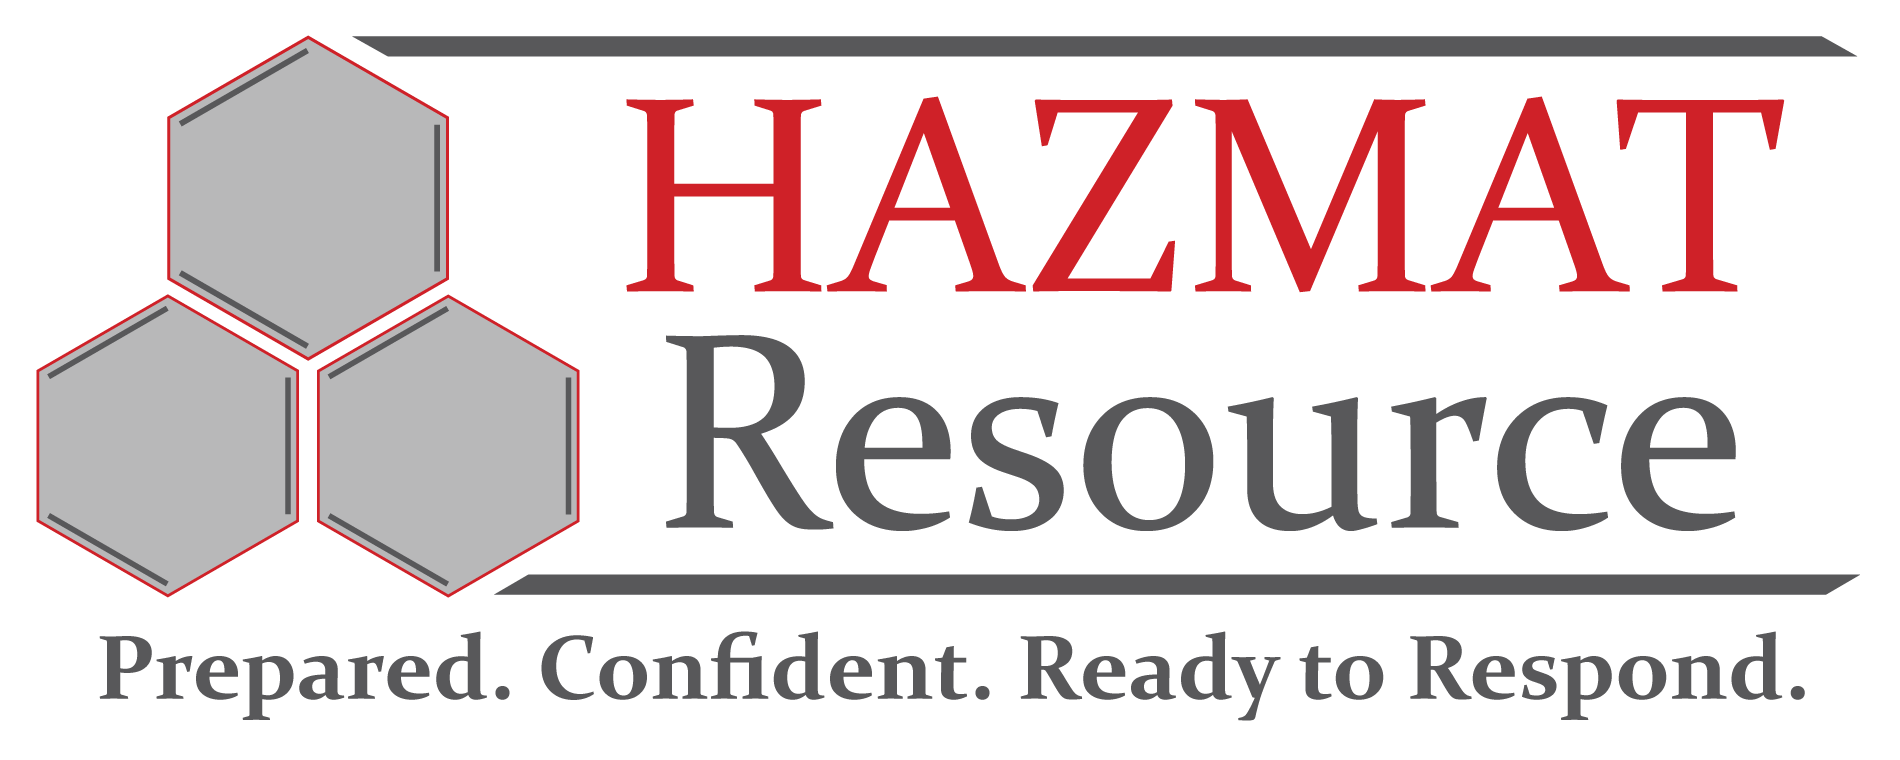 Hazmat Resource